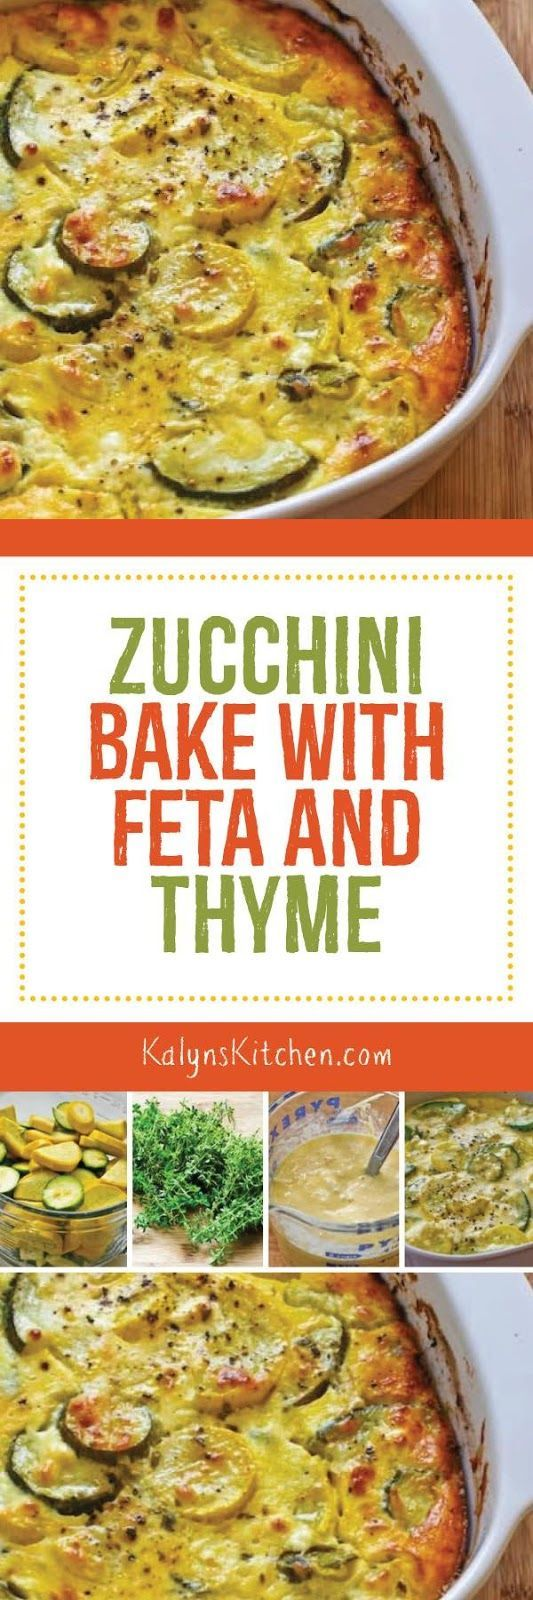 Zucchini Bake with Feta and Thyme is a delicious side dish with zucchini, and this tasty recipe is low-carb, gluten-free, and South Beach Diet Phase One! [found on KalynsKitchen.com]